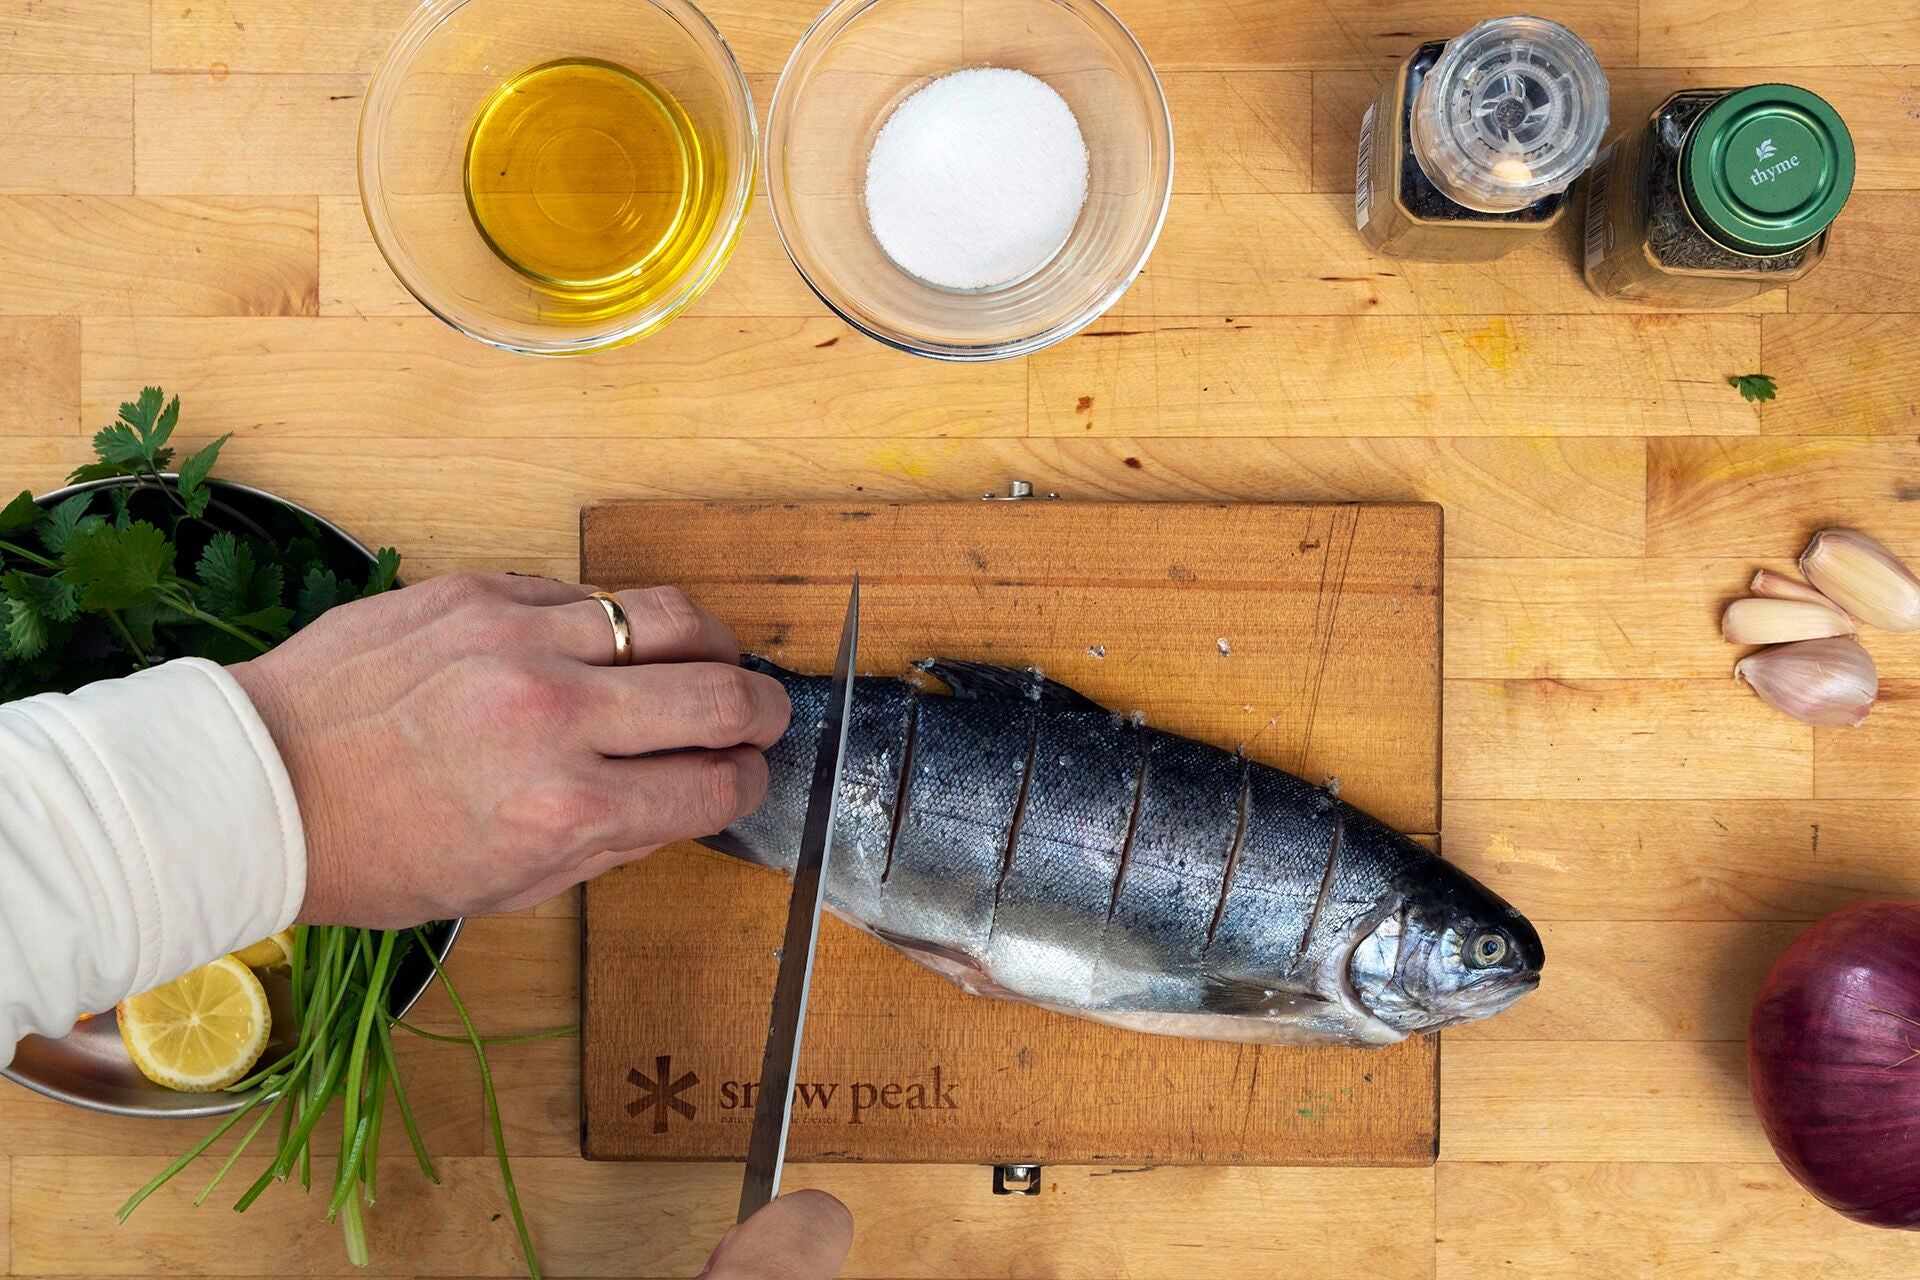 Scoring trout in preparation for grilling